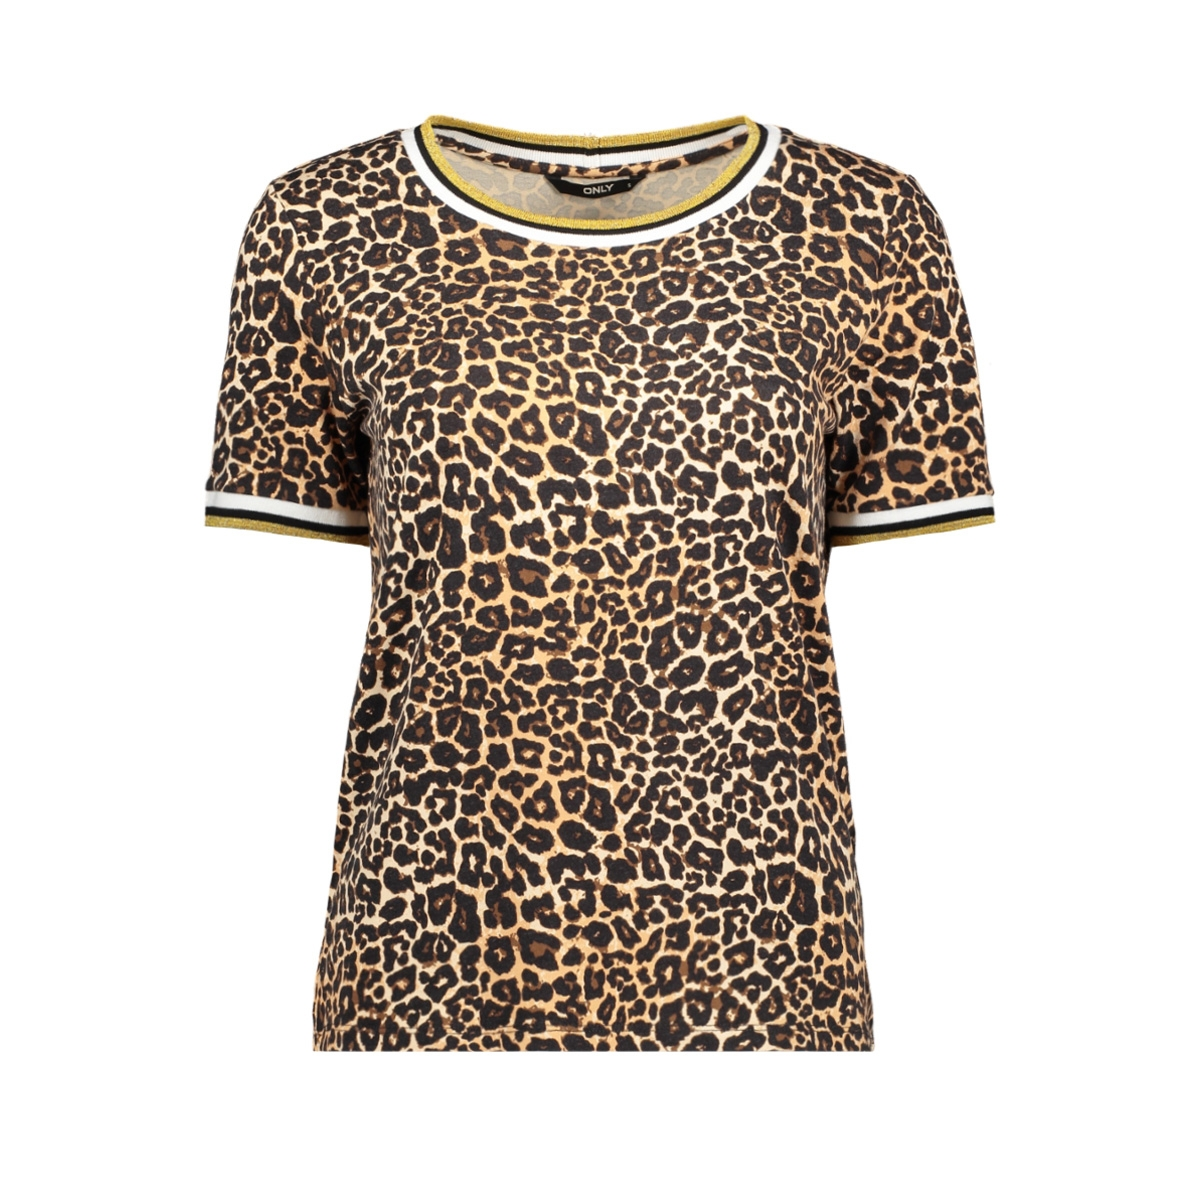 onlnew sporty s/s top jrs 15187690 only t-shirt black/golden yellow